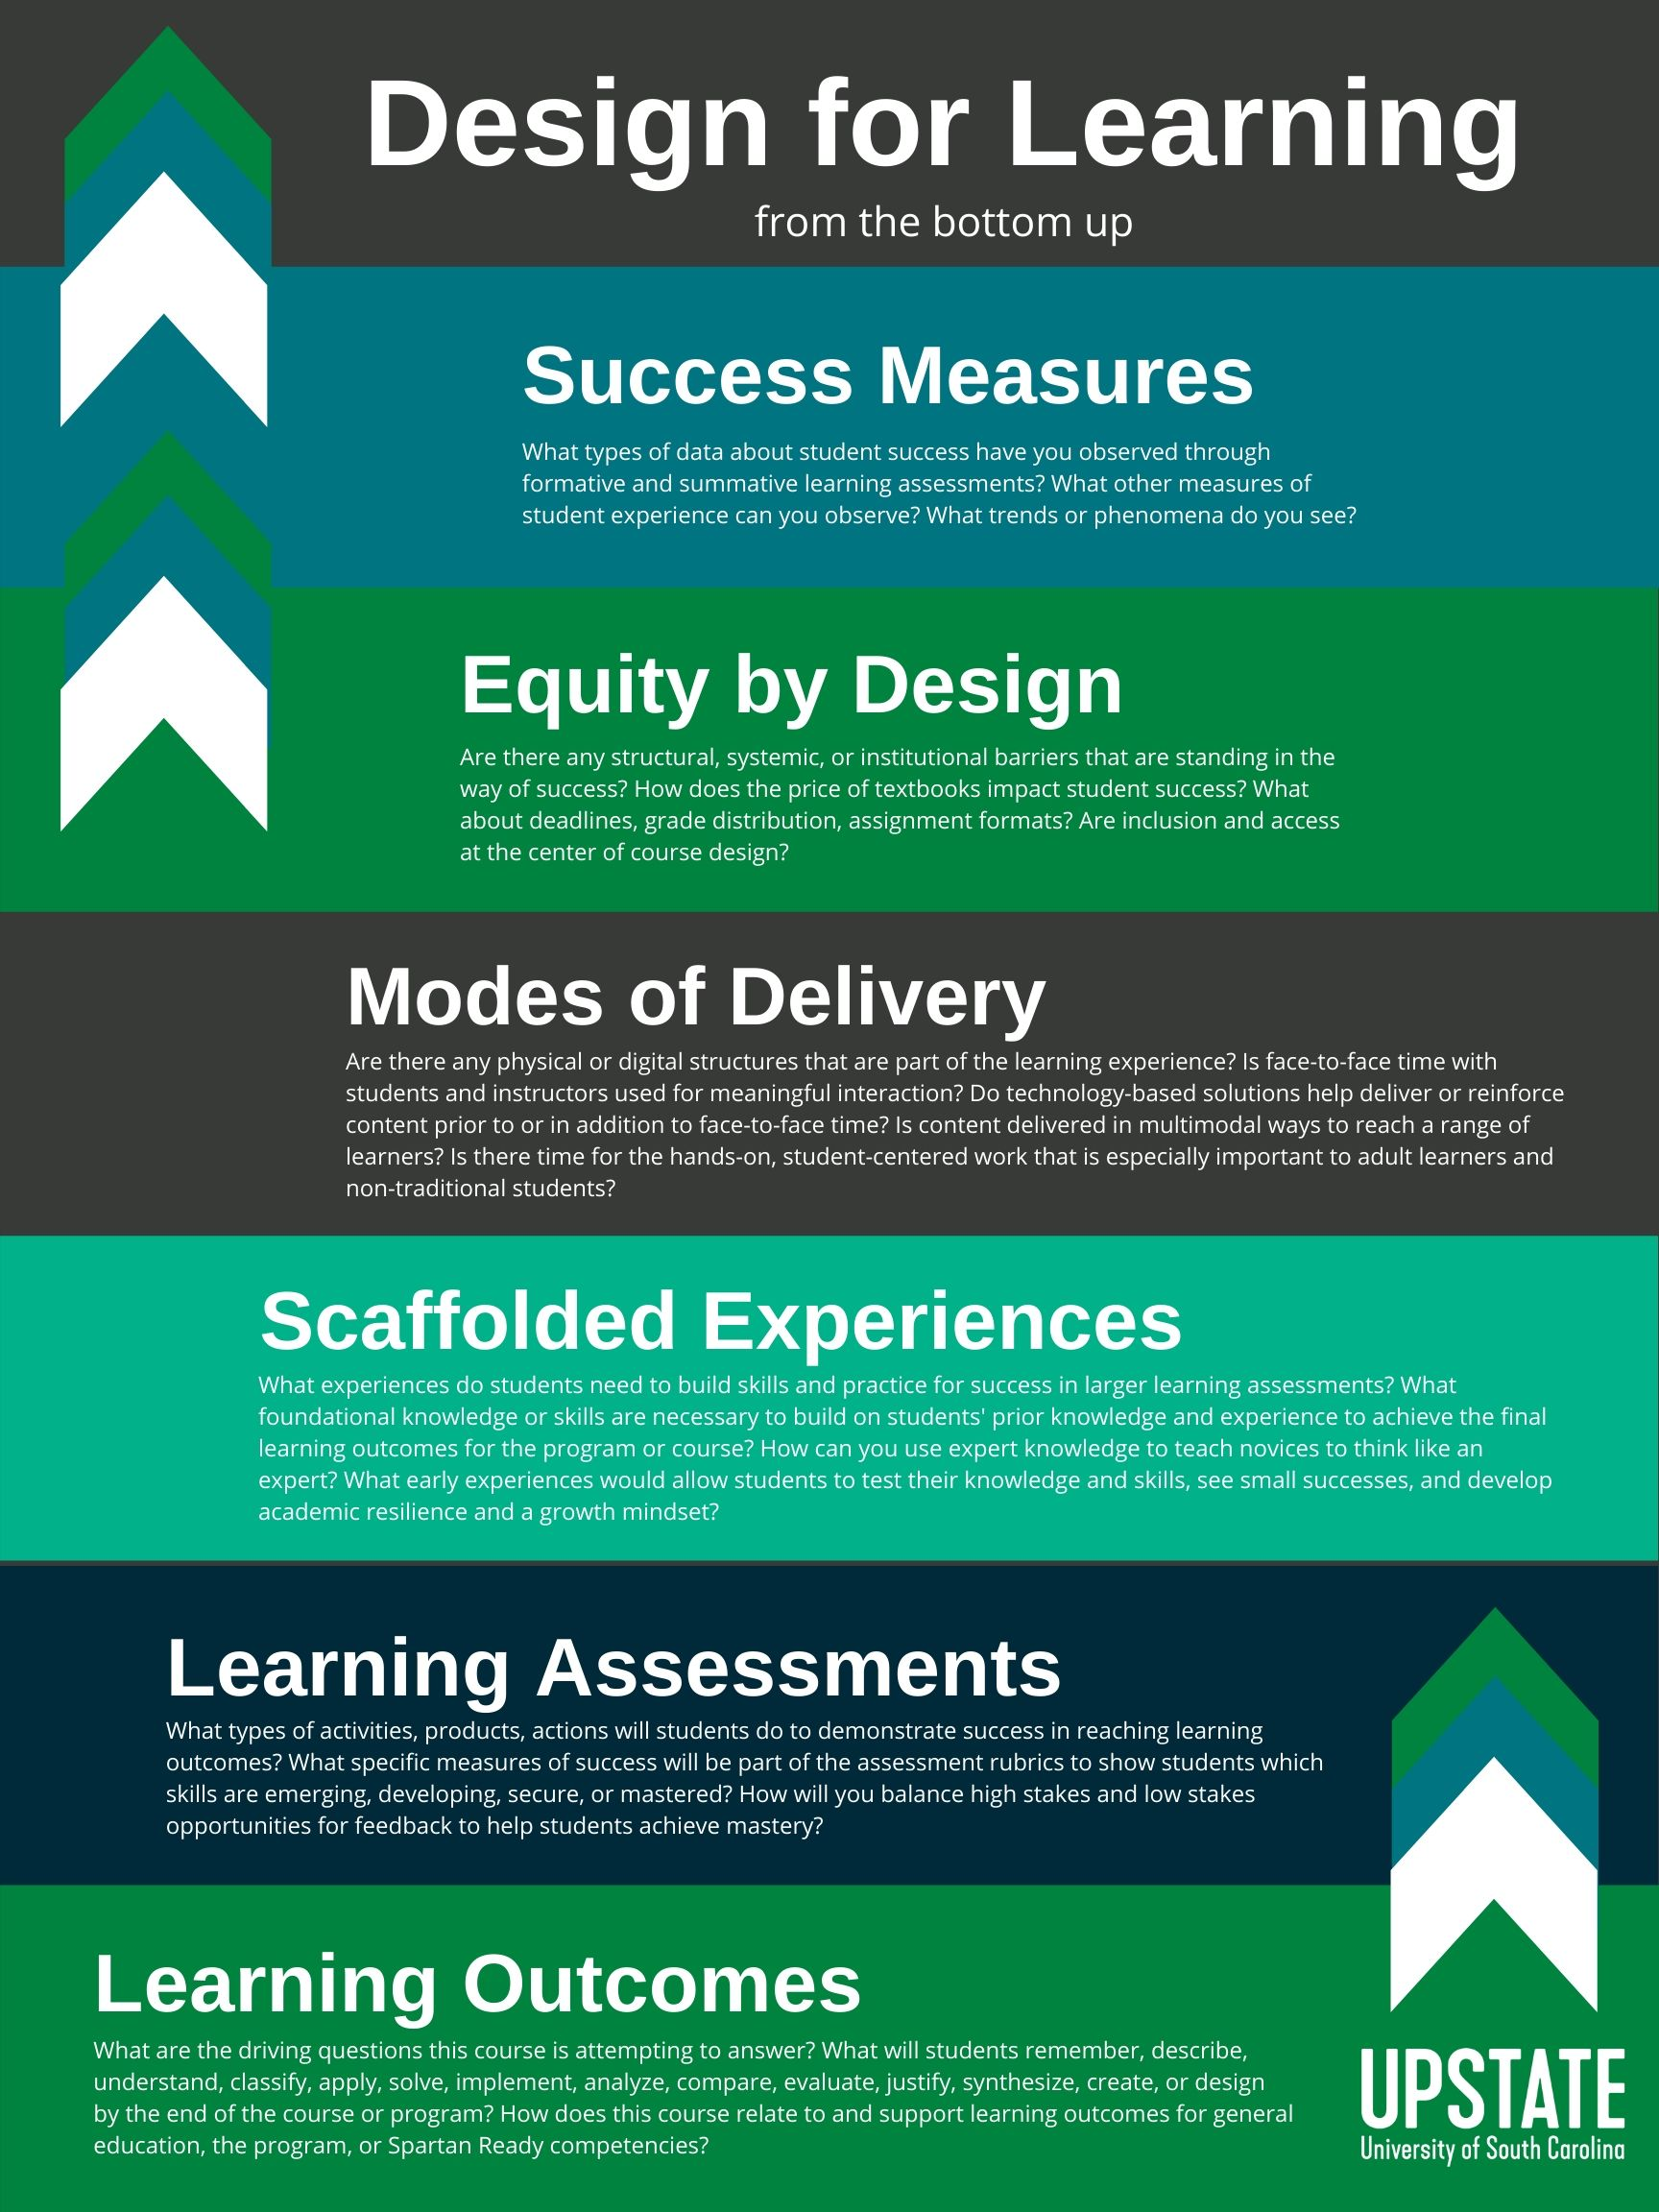 Design for Learning from the bottom up: Learning Outcomes, Learning Assessments, Scaffolded Experiences, Modes of Delivery, Equity by Design, Success Measures. full text provided on the page.